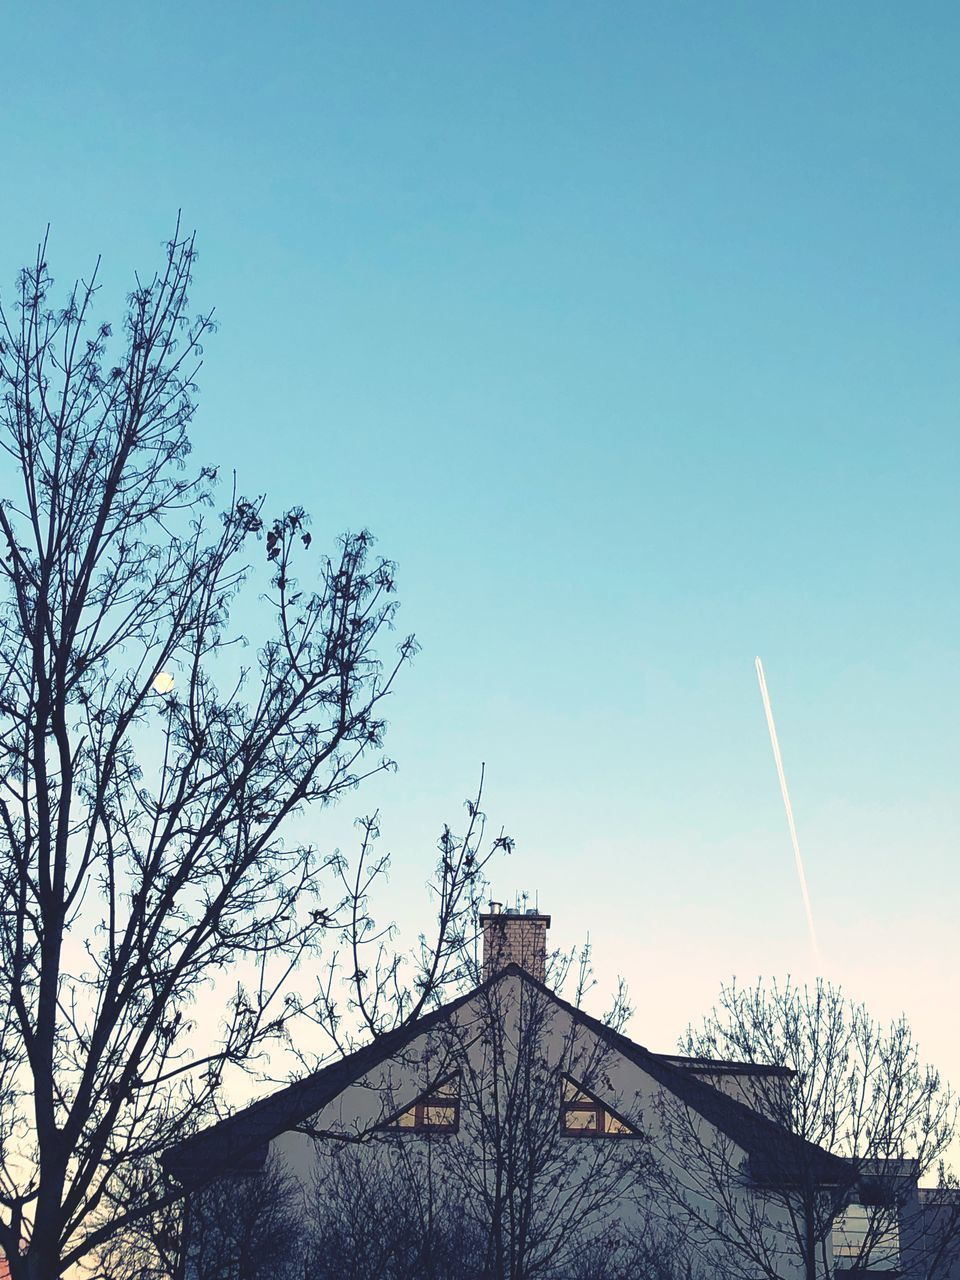 sky, tree, architecture, built structure, building exterior, building, plant, nature, no people, bare tree, low angle view, clear sky, branch, day, copy space, house, blue, roof, outdoors, vapor trail, spire